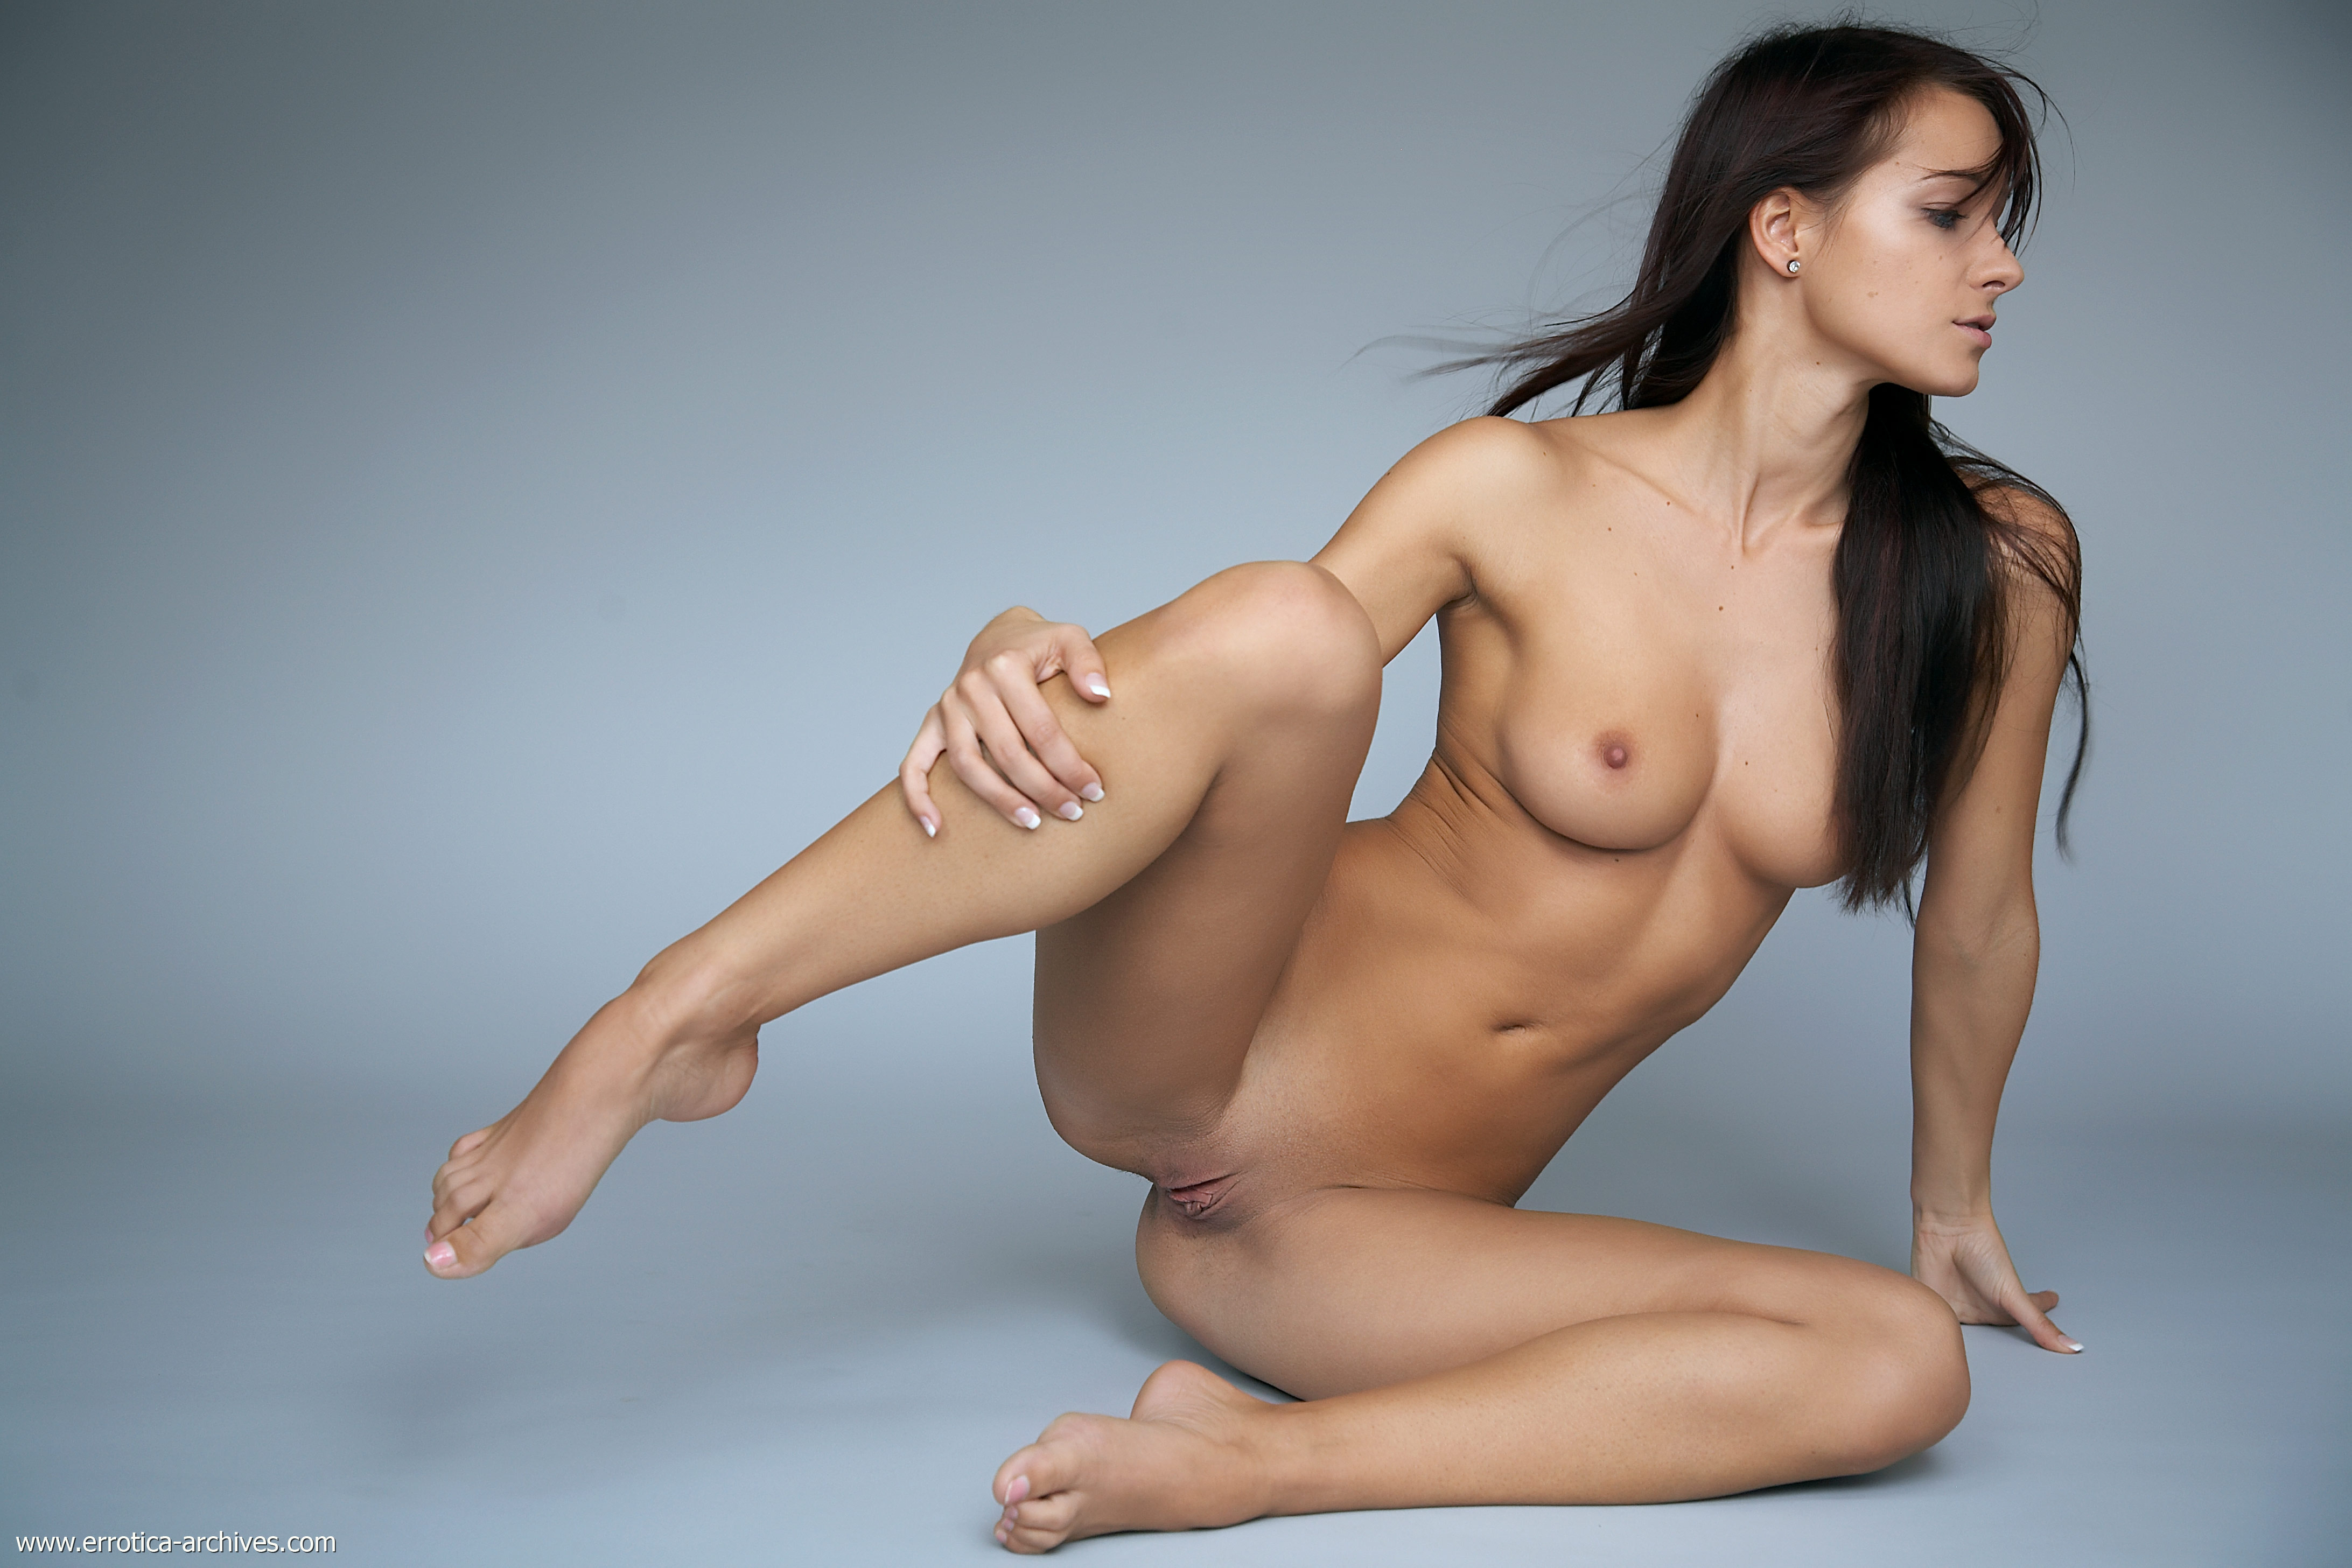 Naked girls from playboy in groups